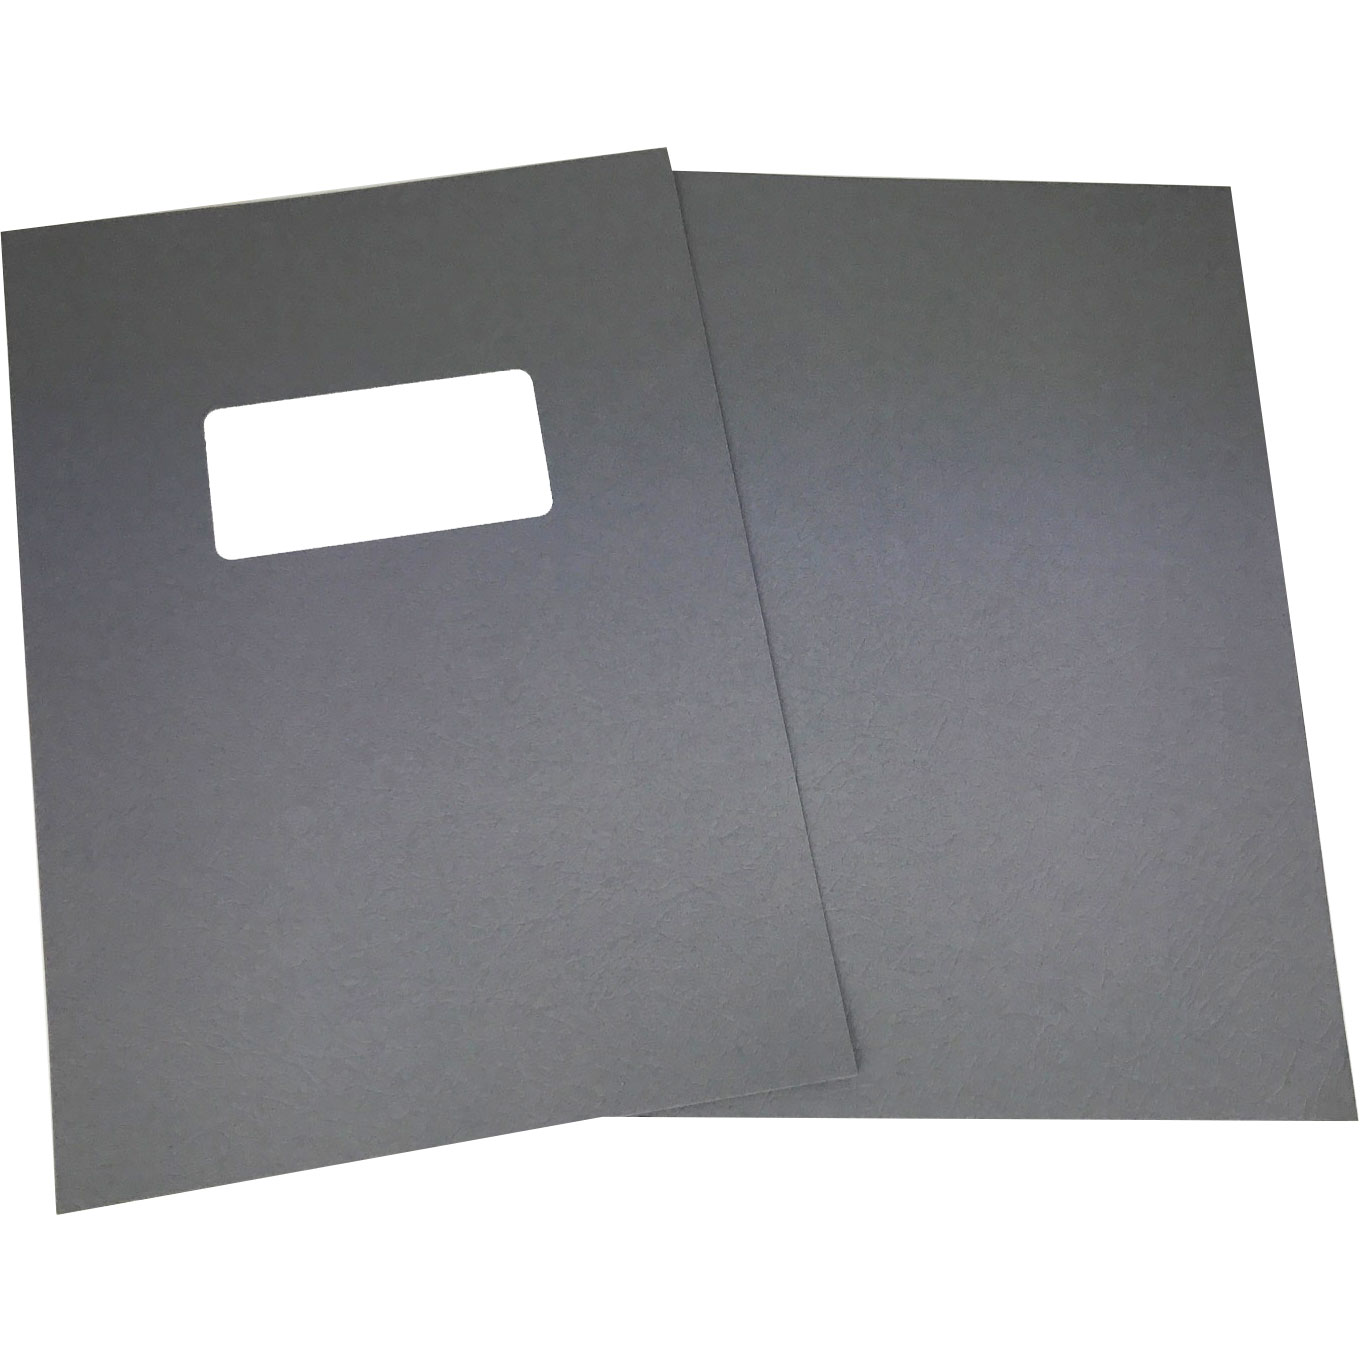 Grey Leathergrain A4 Binding Covers - Window Cut-Out